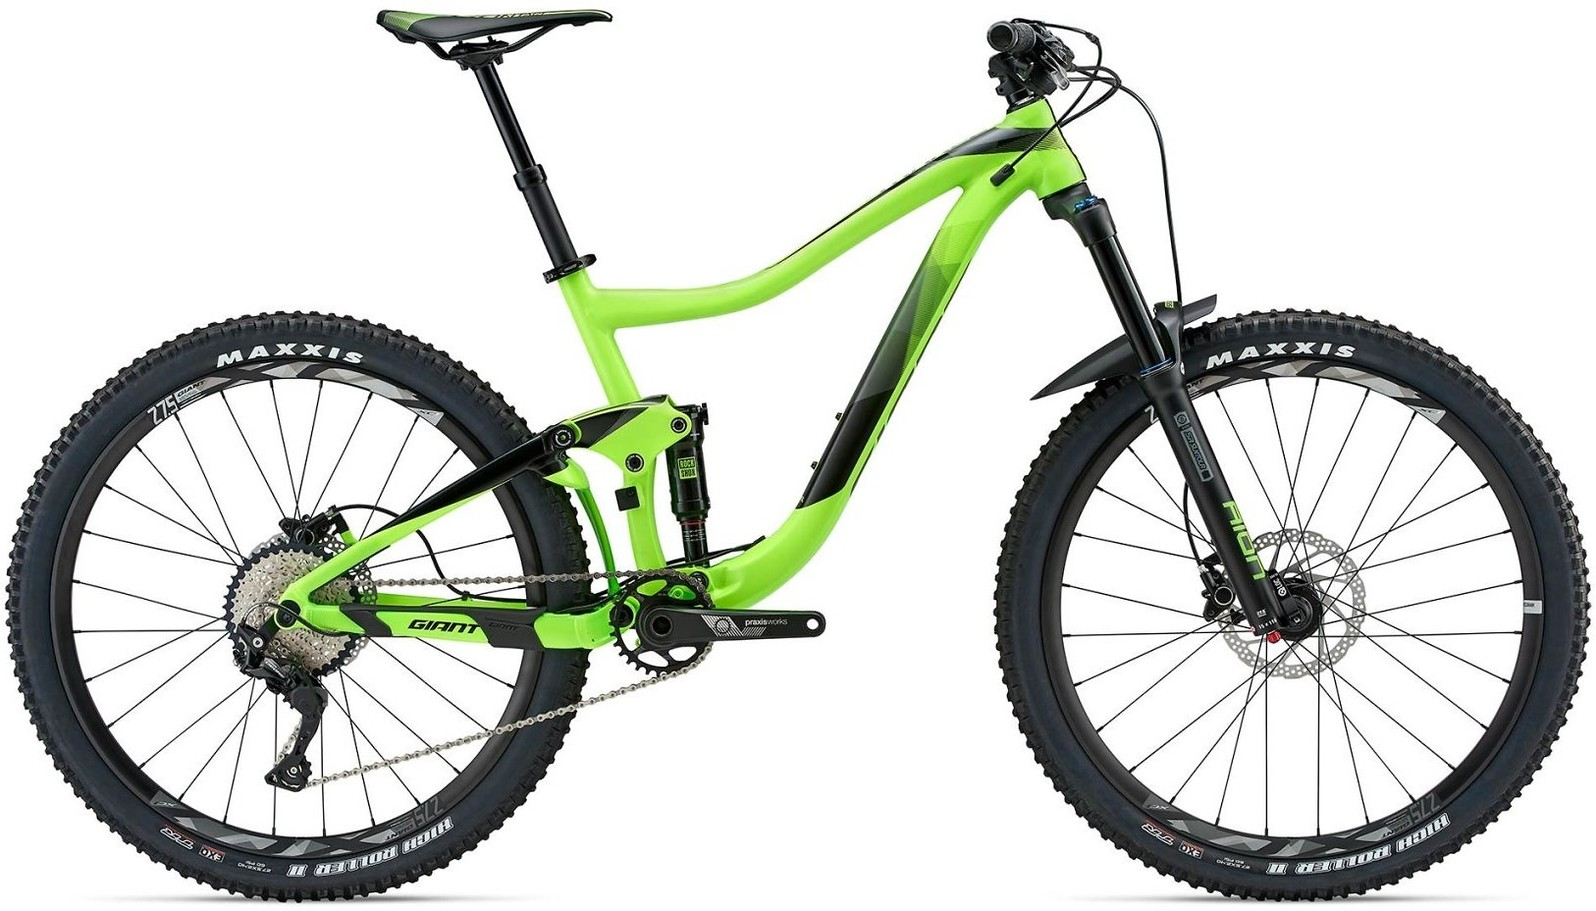 2018 Giant Trance 3 Bike - Reviews, Comparisons, Specs - Mountain Bikes - Vital MTB